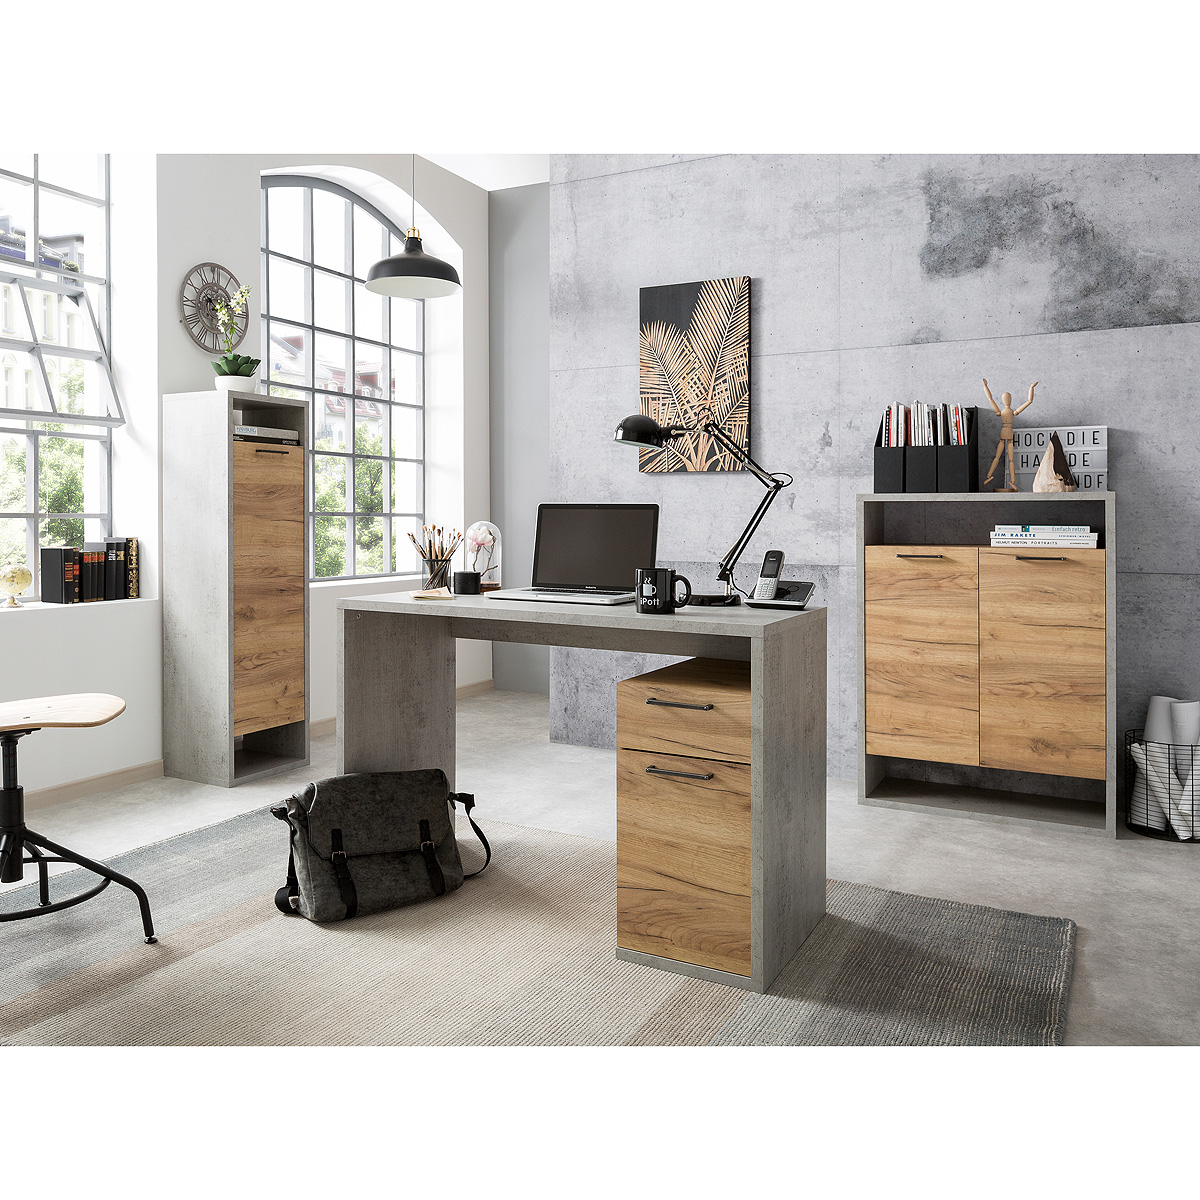 b roset 2 momo schreibtisch regal schrank home office in beton grau honig eiche ebay. Black Bedroom Furniture Sets. Home Design Ideas